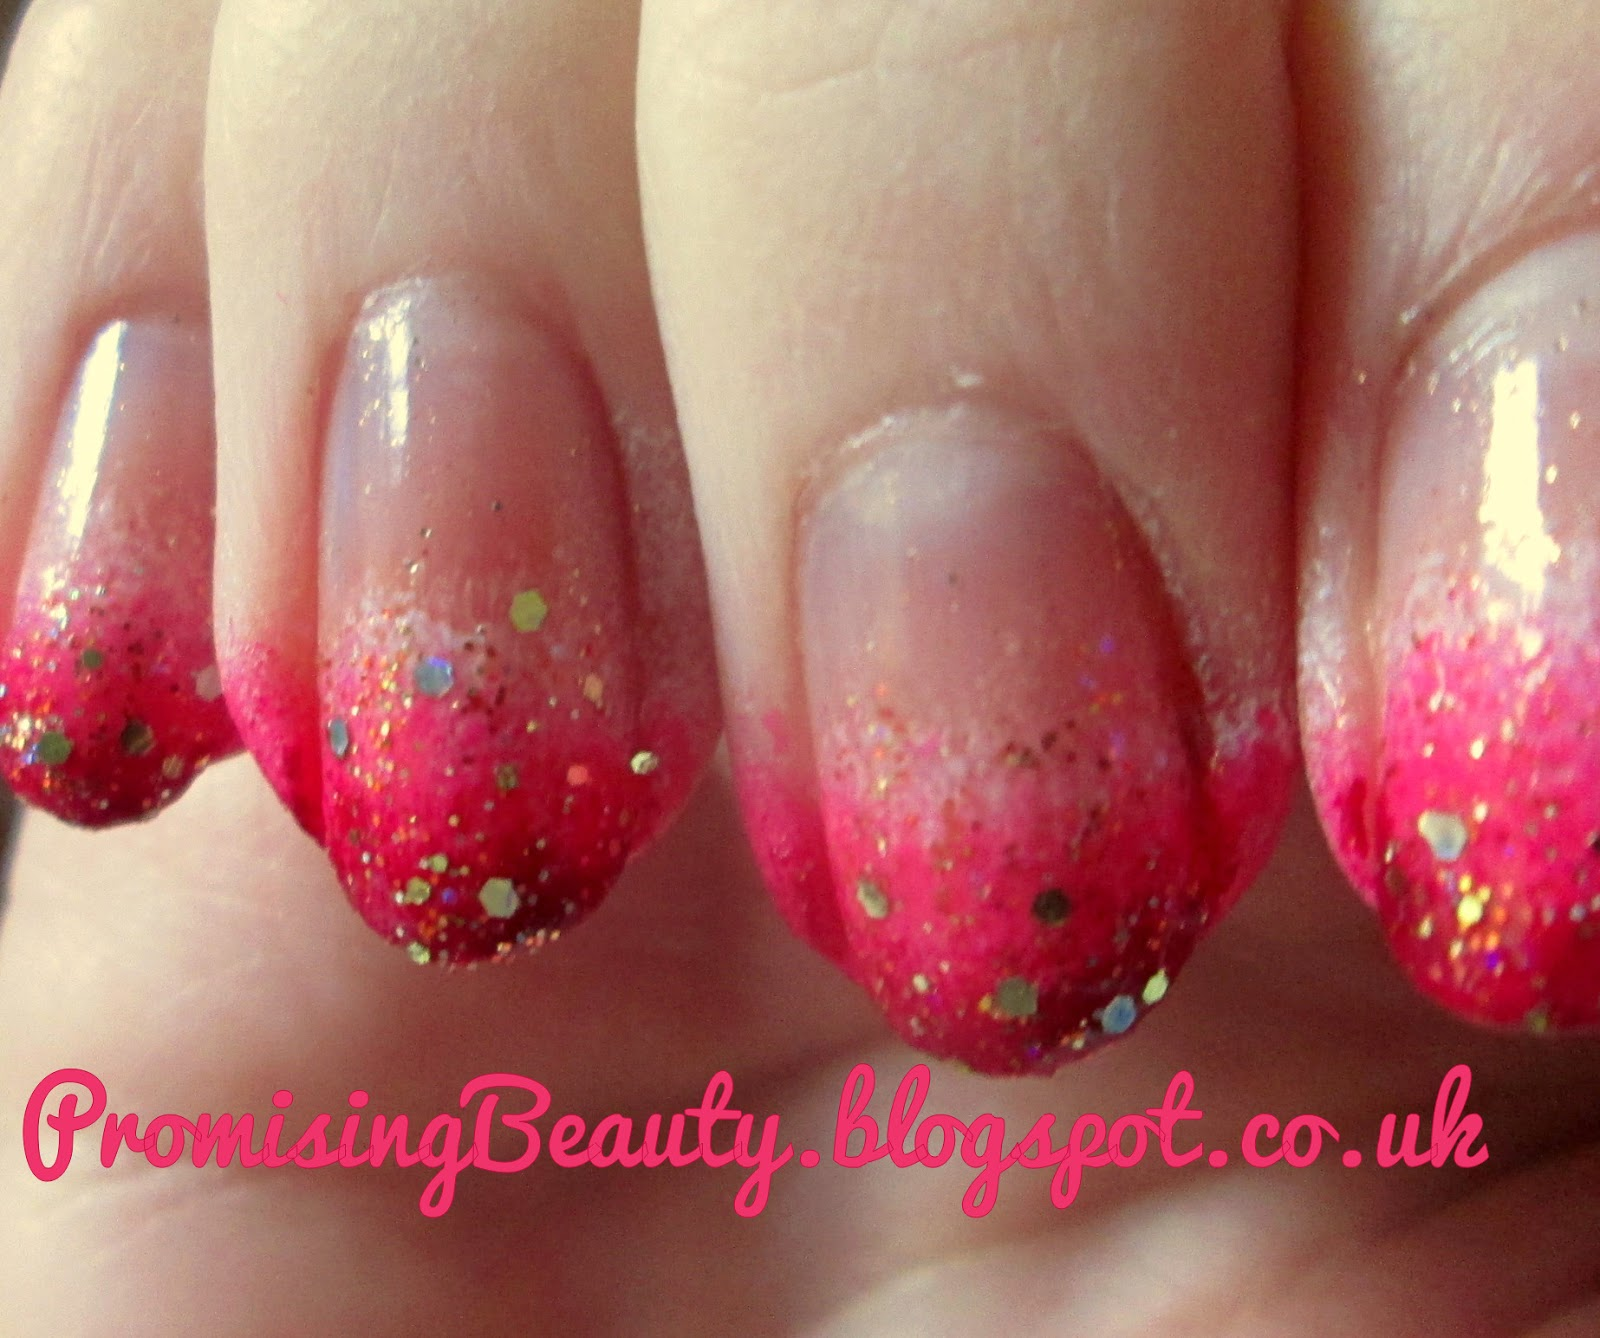 Valentines day pink ombre nails with Barry M yellow topaz glitter. Valentines day nail art manicure